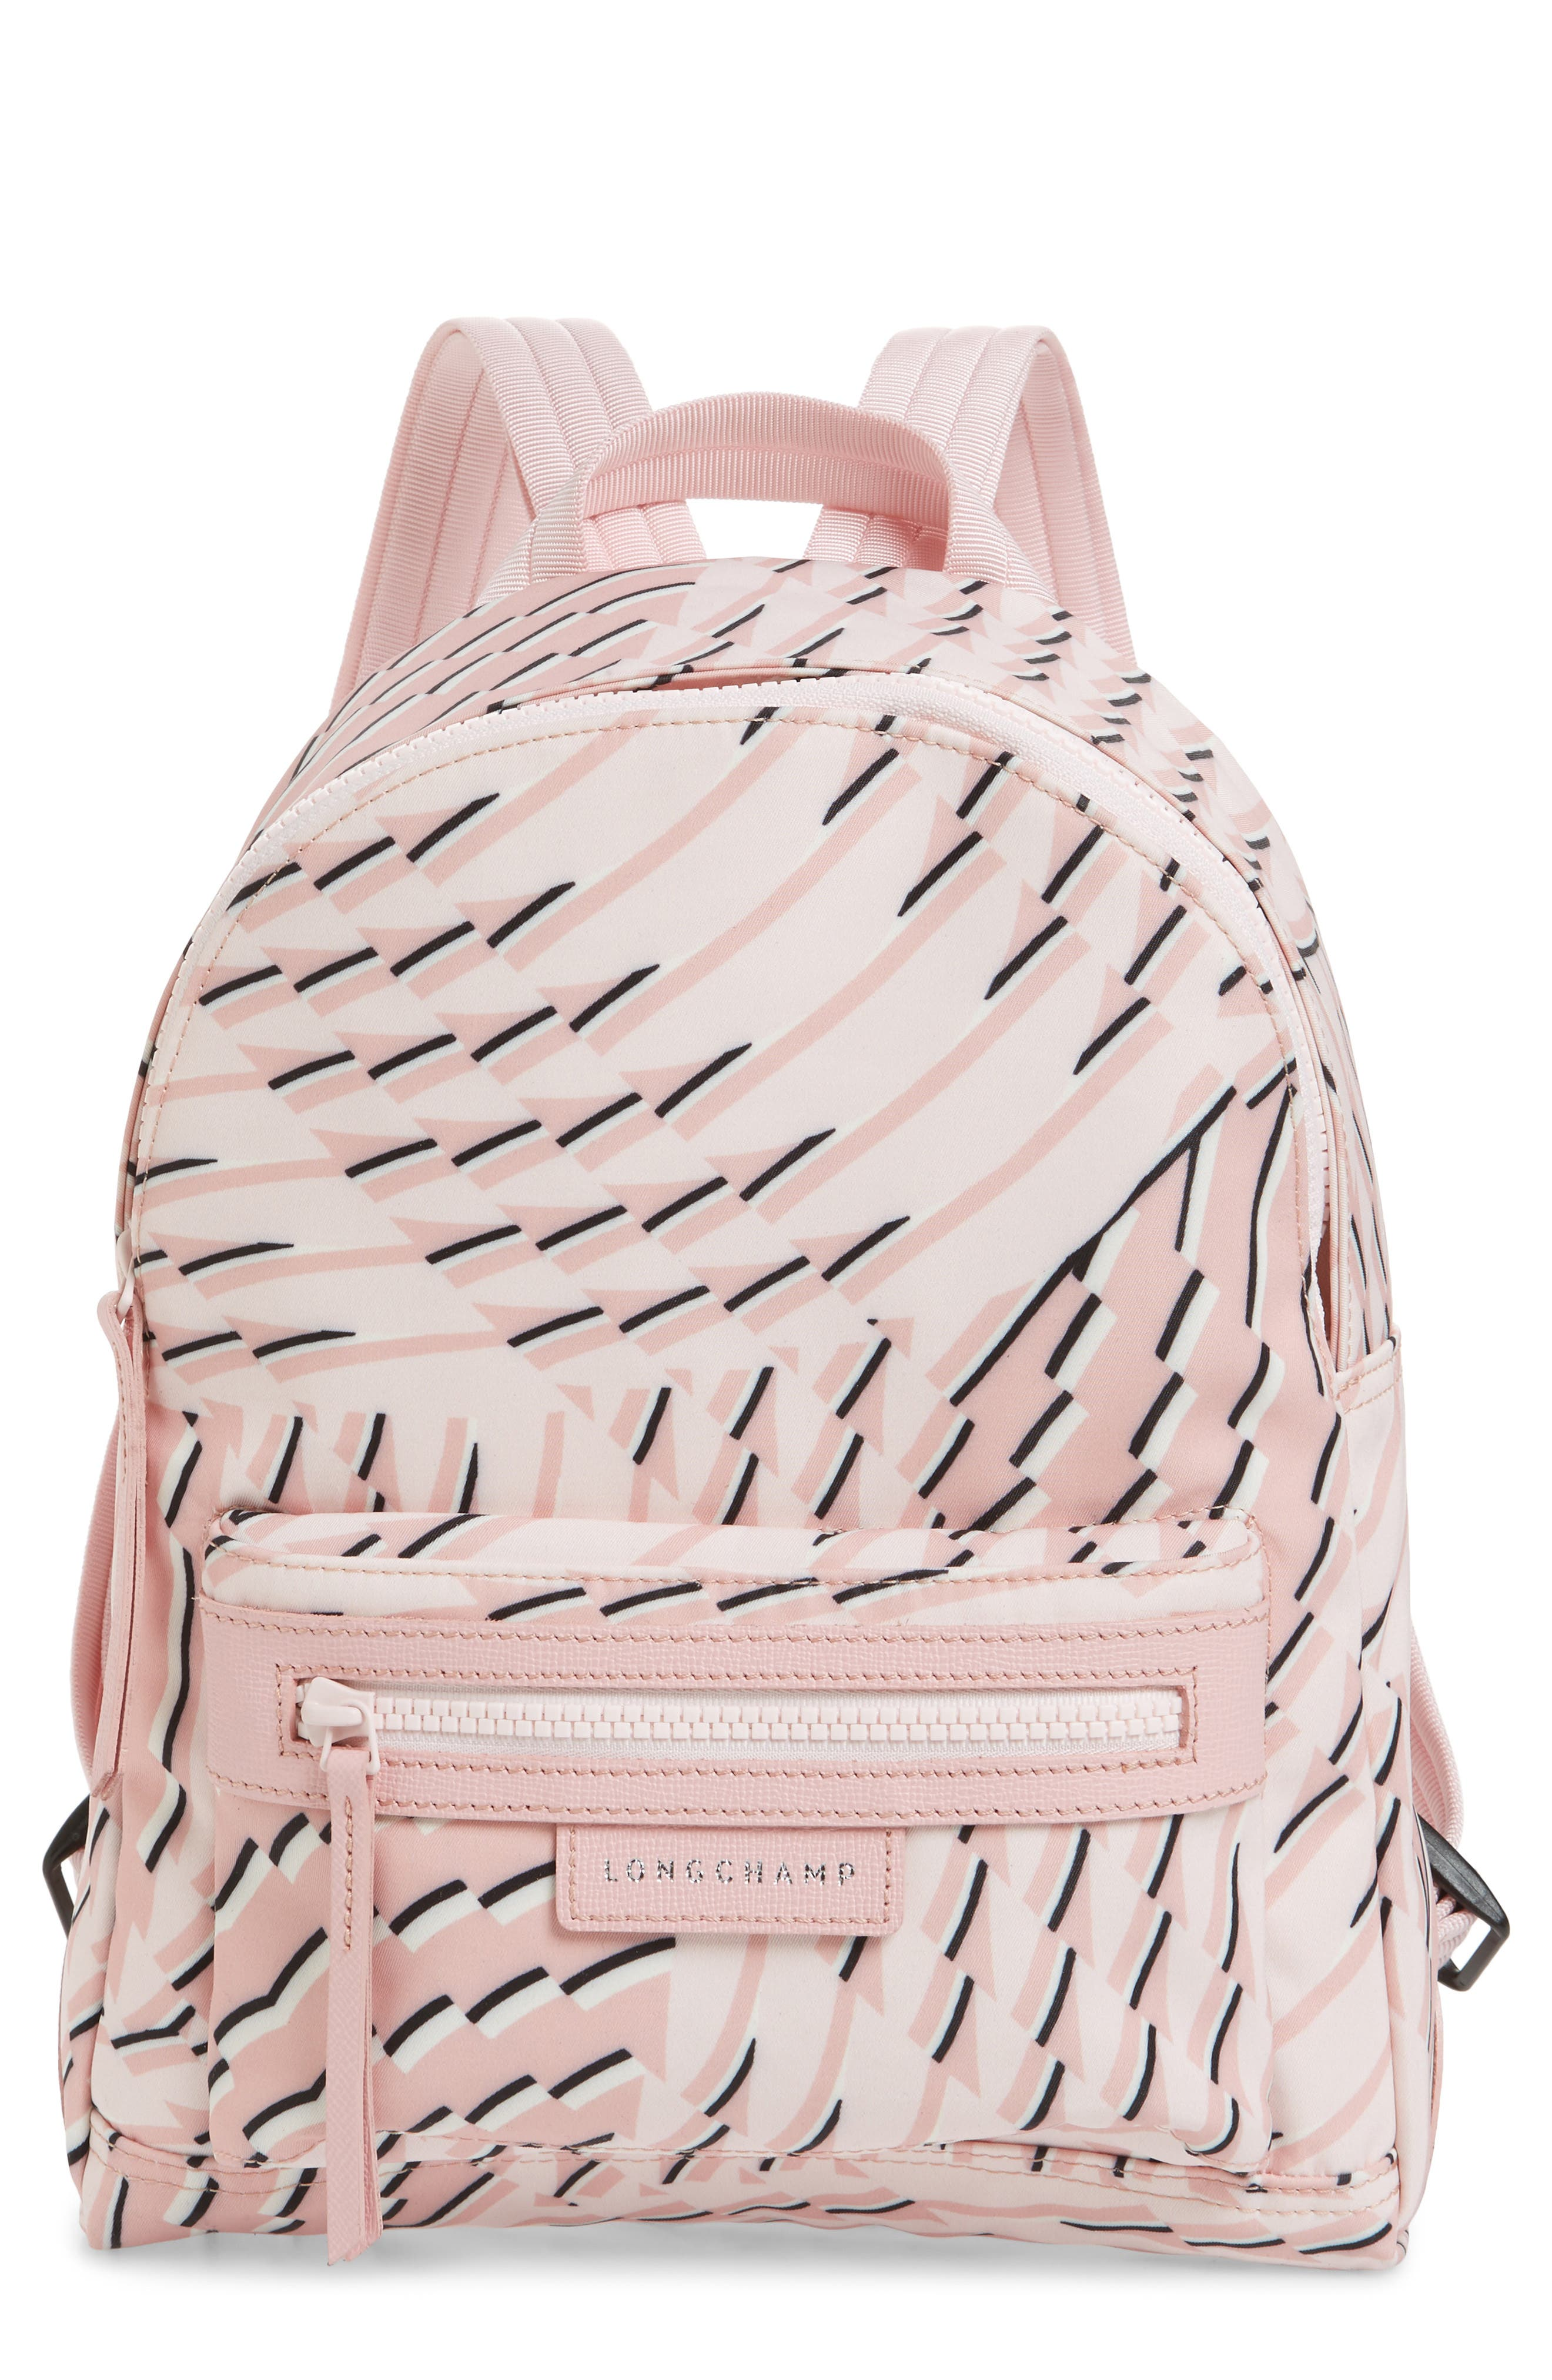 Longchamp Small Le Pliage Neo Print Backpack Pink In Petal Modesens